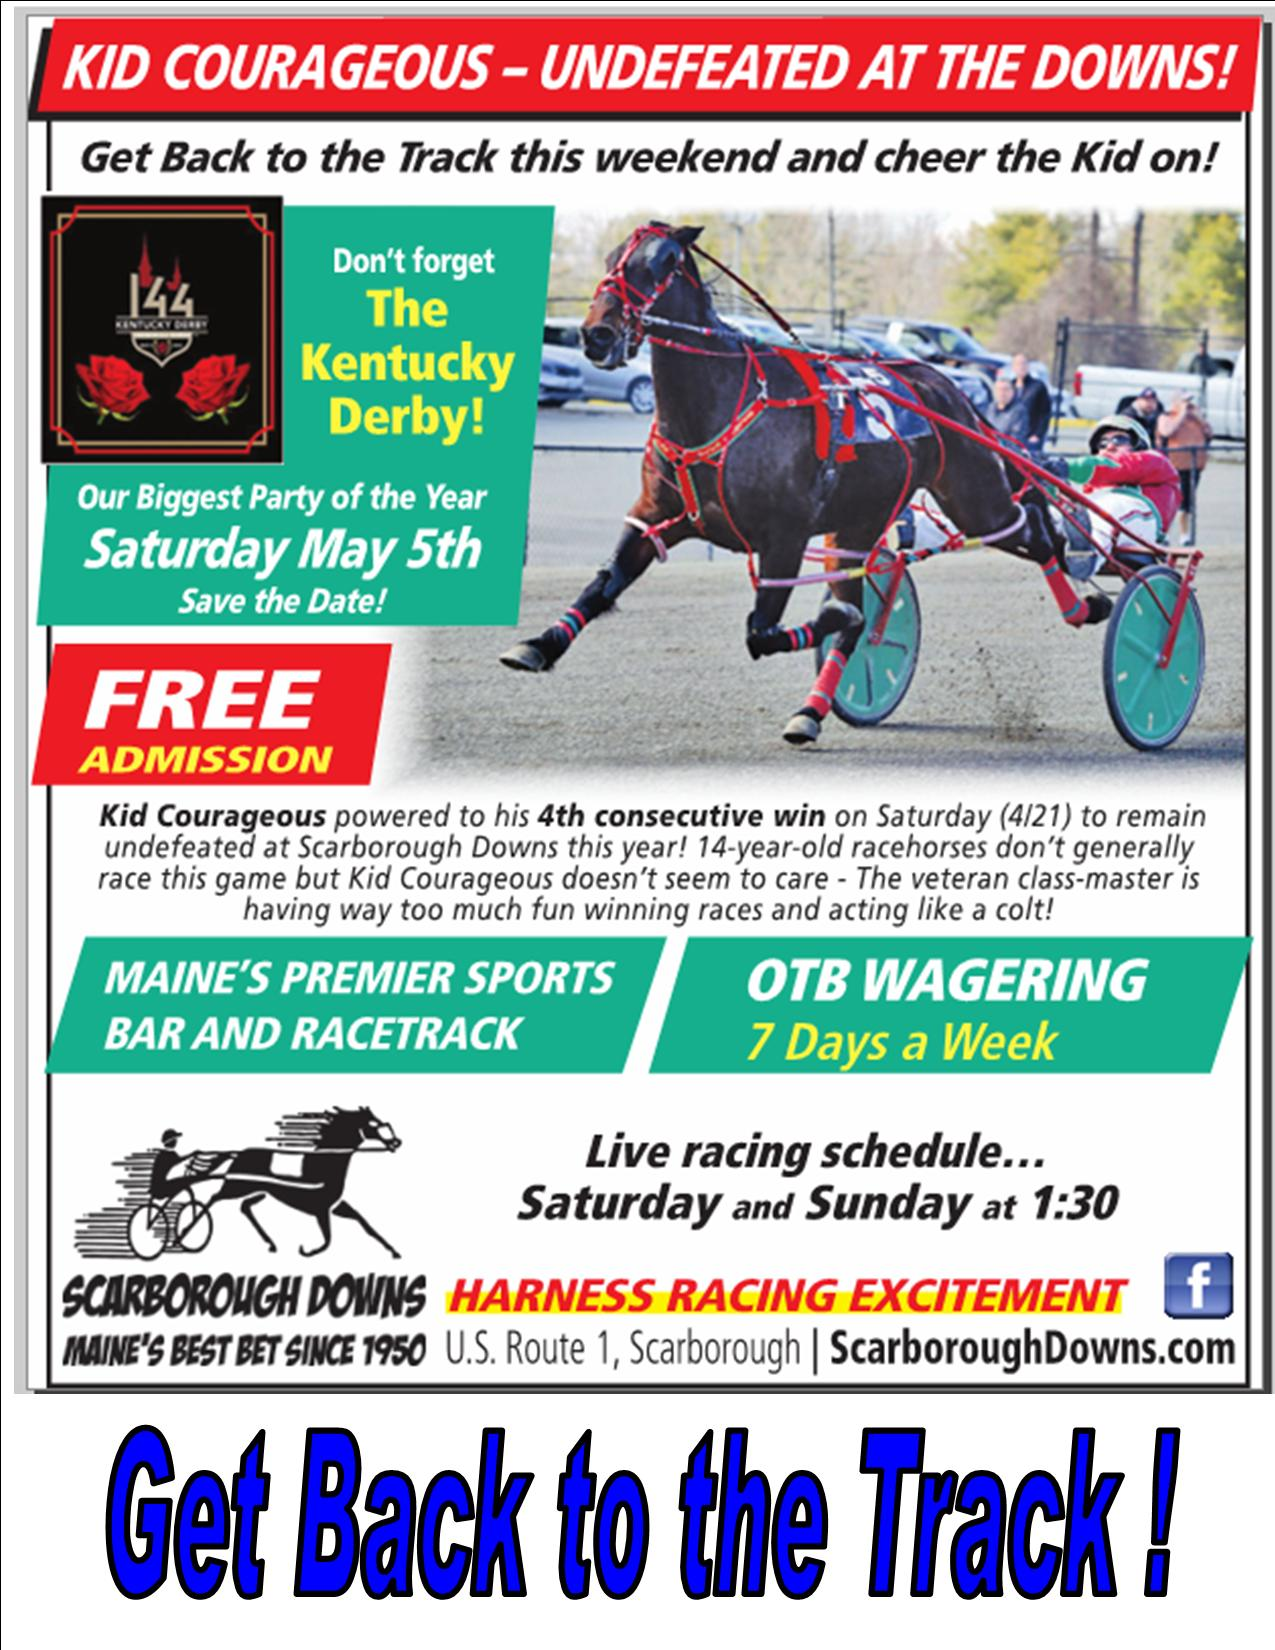 Scarborough Downs - Maine\'s Best Bet Since 1950!